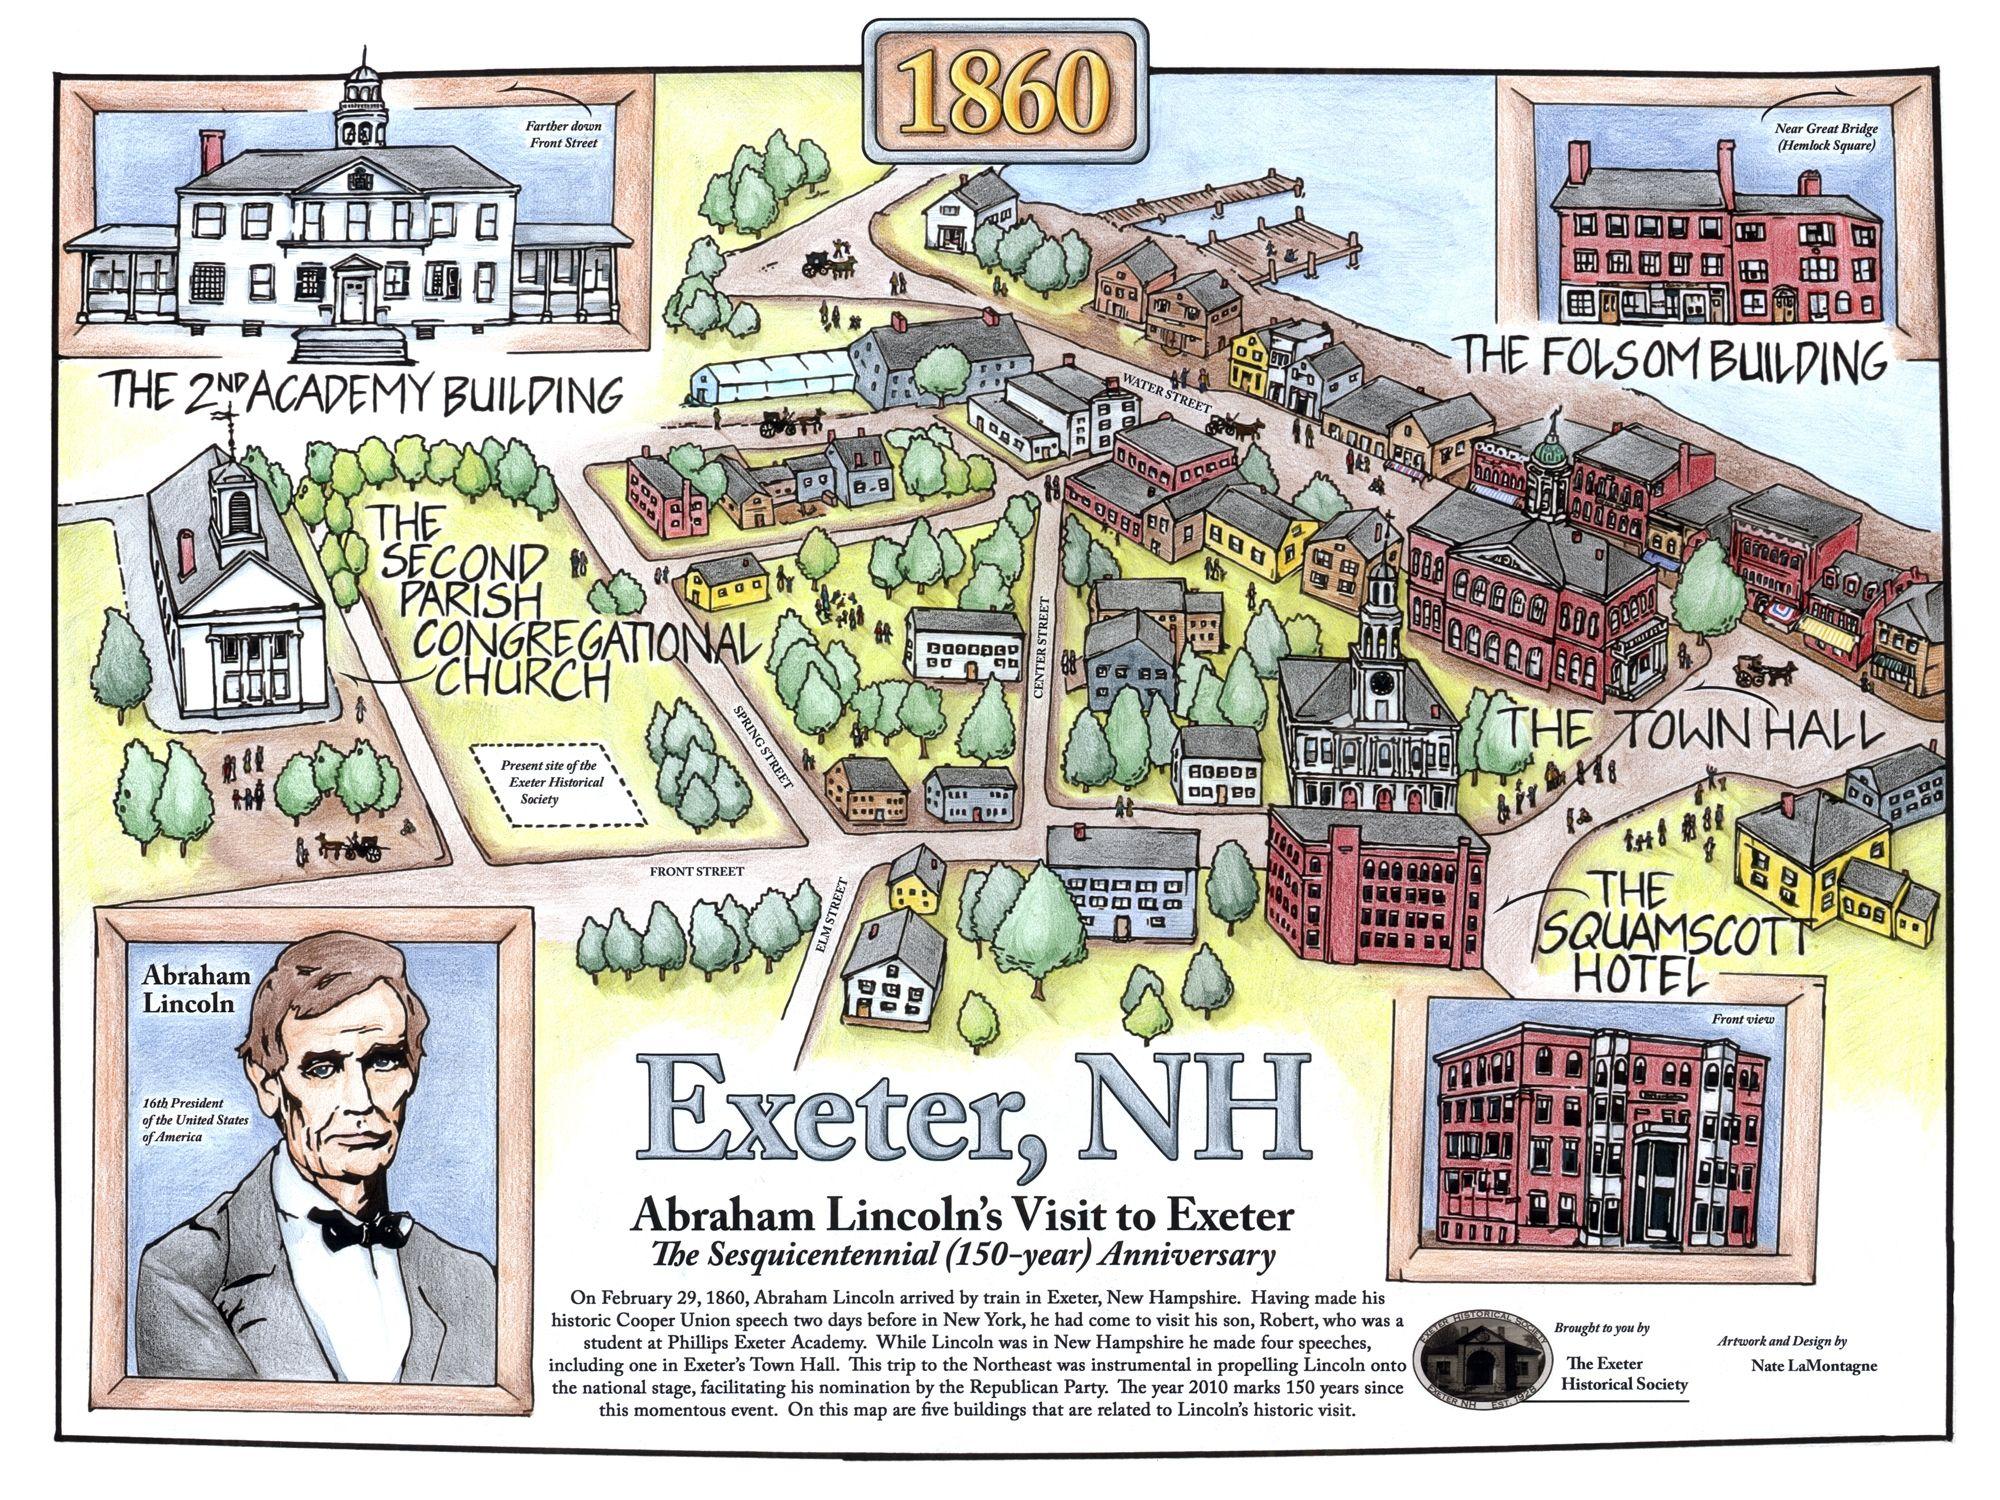 phillips exeter academy campus map Designed For The Lincoln Sesquicentennial Celebration In 2010 By phillips exeter academy campus map